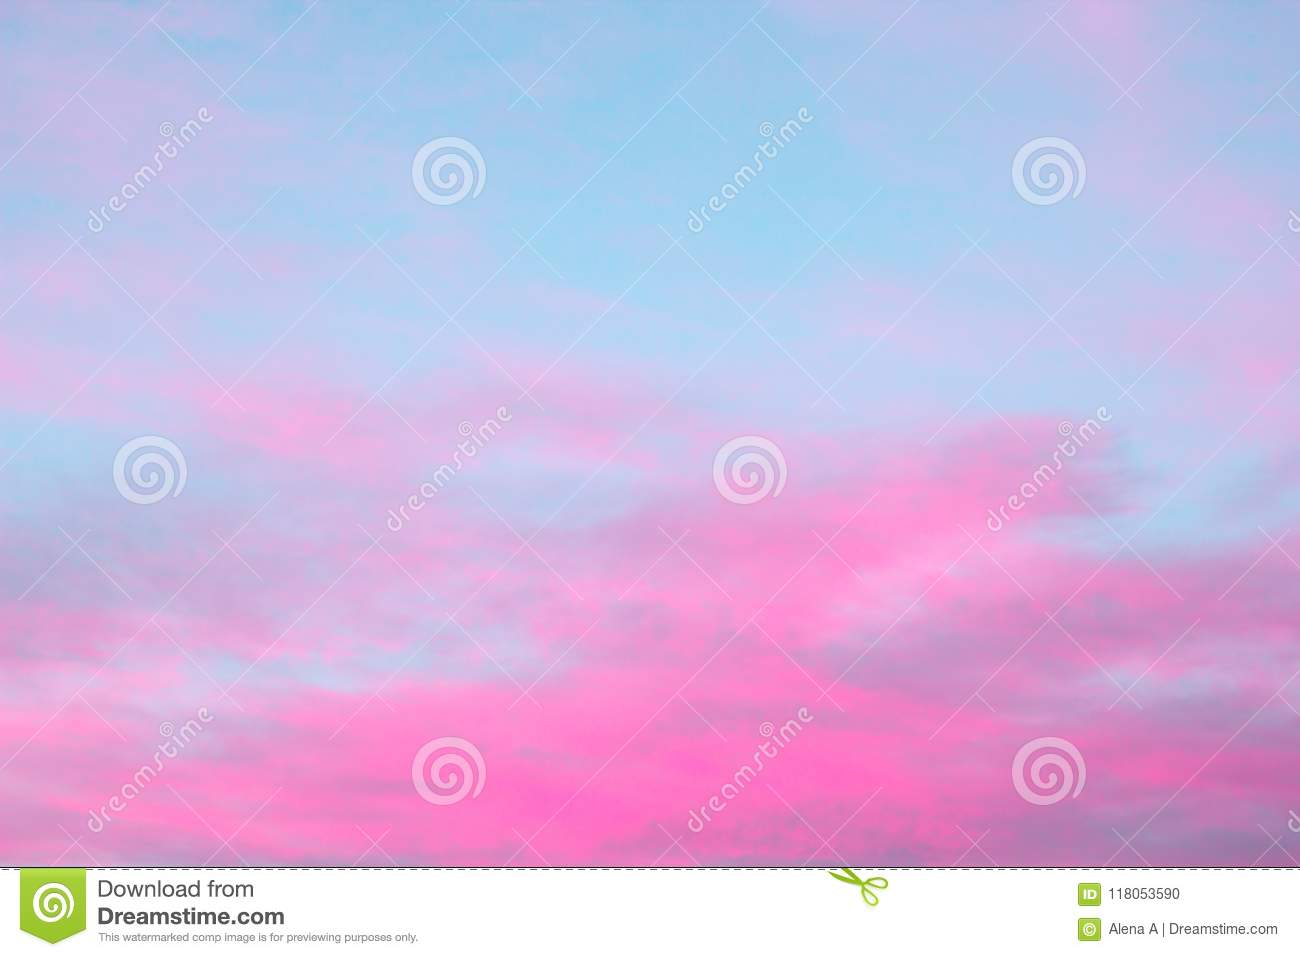 Bright pink clouds